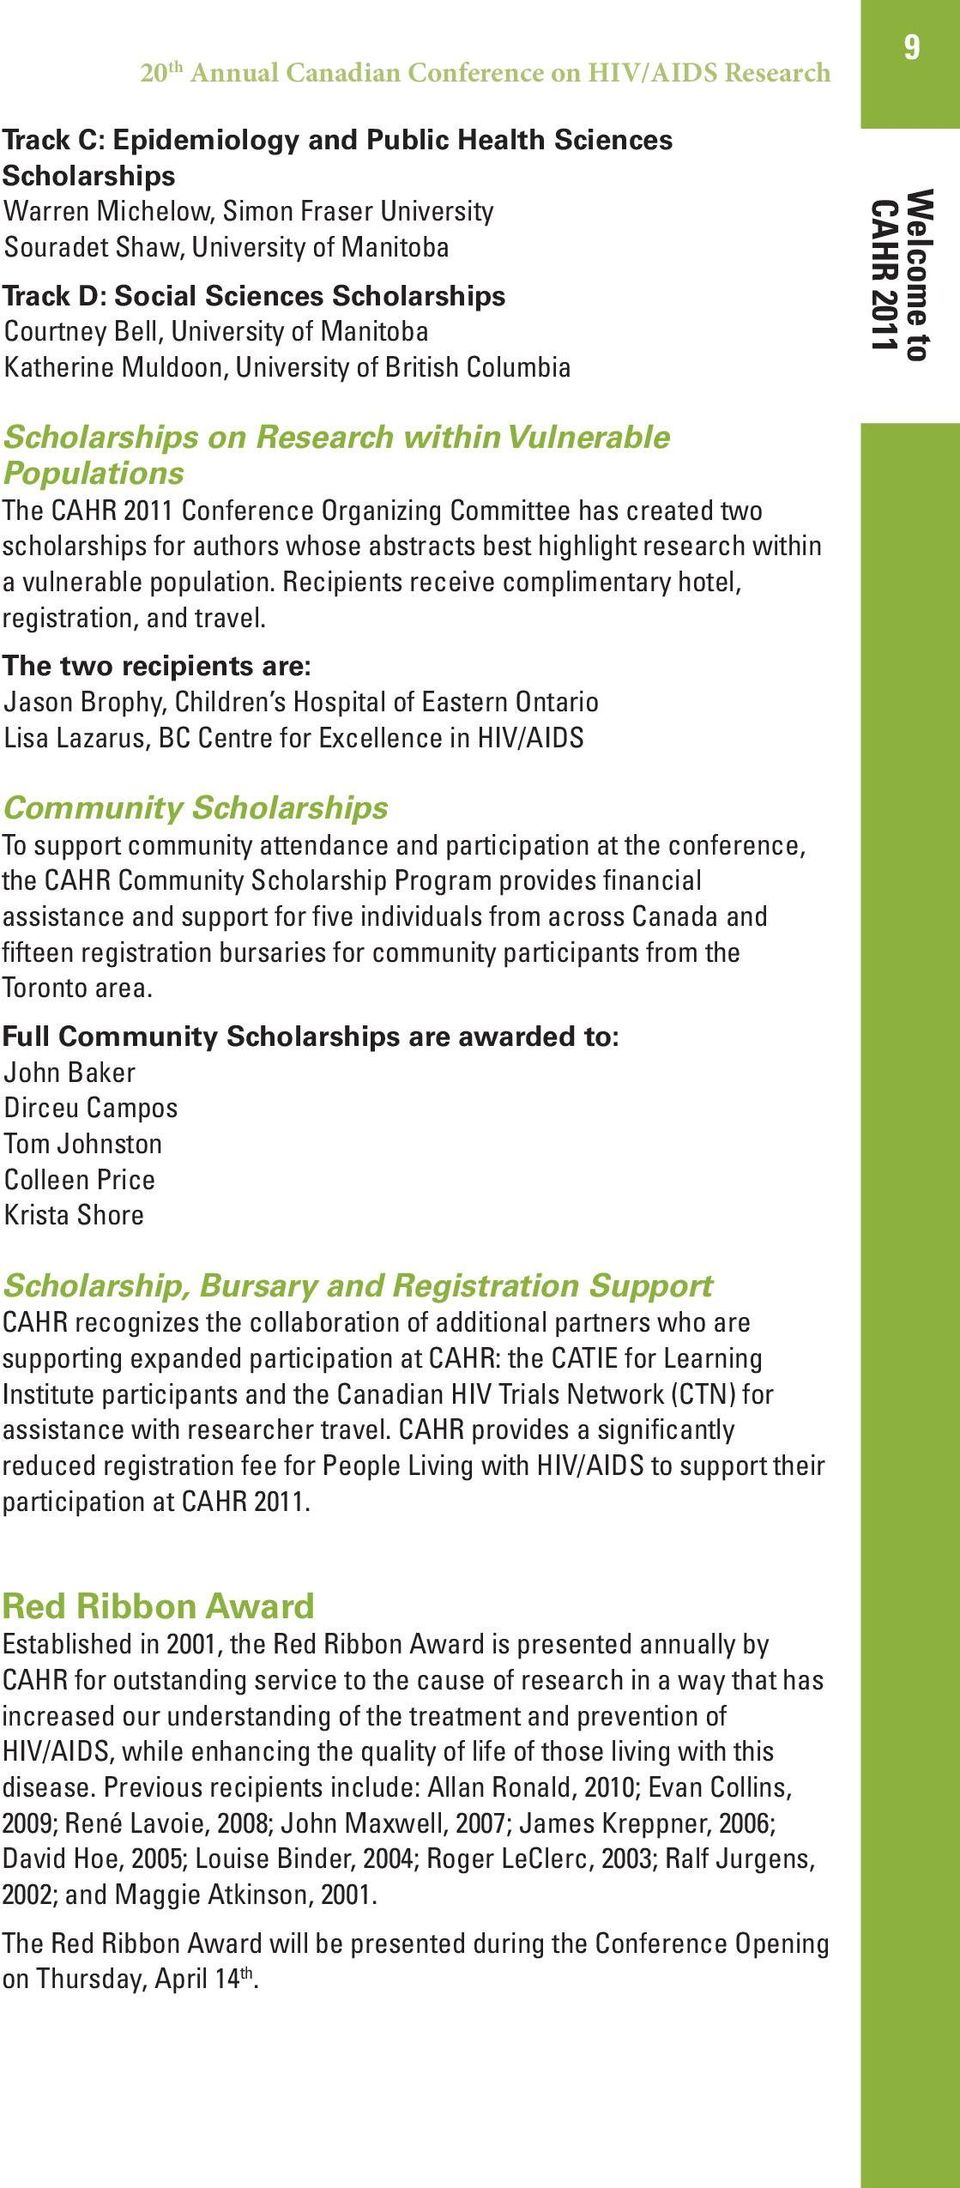 Populations The CAHR 2011 Conference Organizing Committee has created two scholarships for authors whose abstracts best highlight research within a vulnerable population.